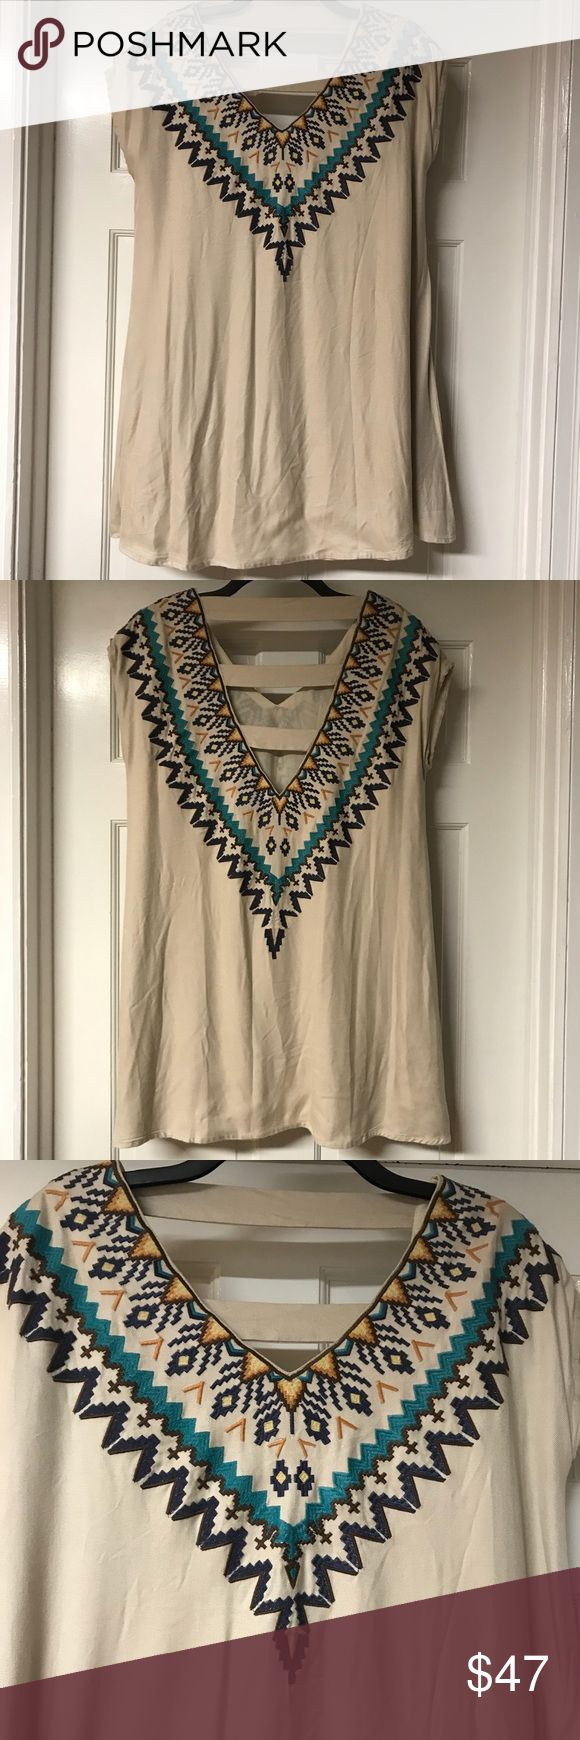 """JUDITH MARCH EMBROIDERED TUNIC Like new, linen colored, swing style, tunic with wrap around embroidered Aztex design in blue, turquoise, brown, yellow and orange on the front and  back. This stylish, V-neck top by Judith March has cap sleeves, a deep-V ladder back and is fully lined. Top 100% viscose, lining 100% polyester. Approximate measurements: chest 21"""", length 33"""". Judith March Tops"""